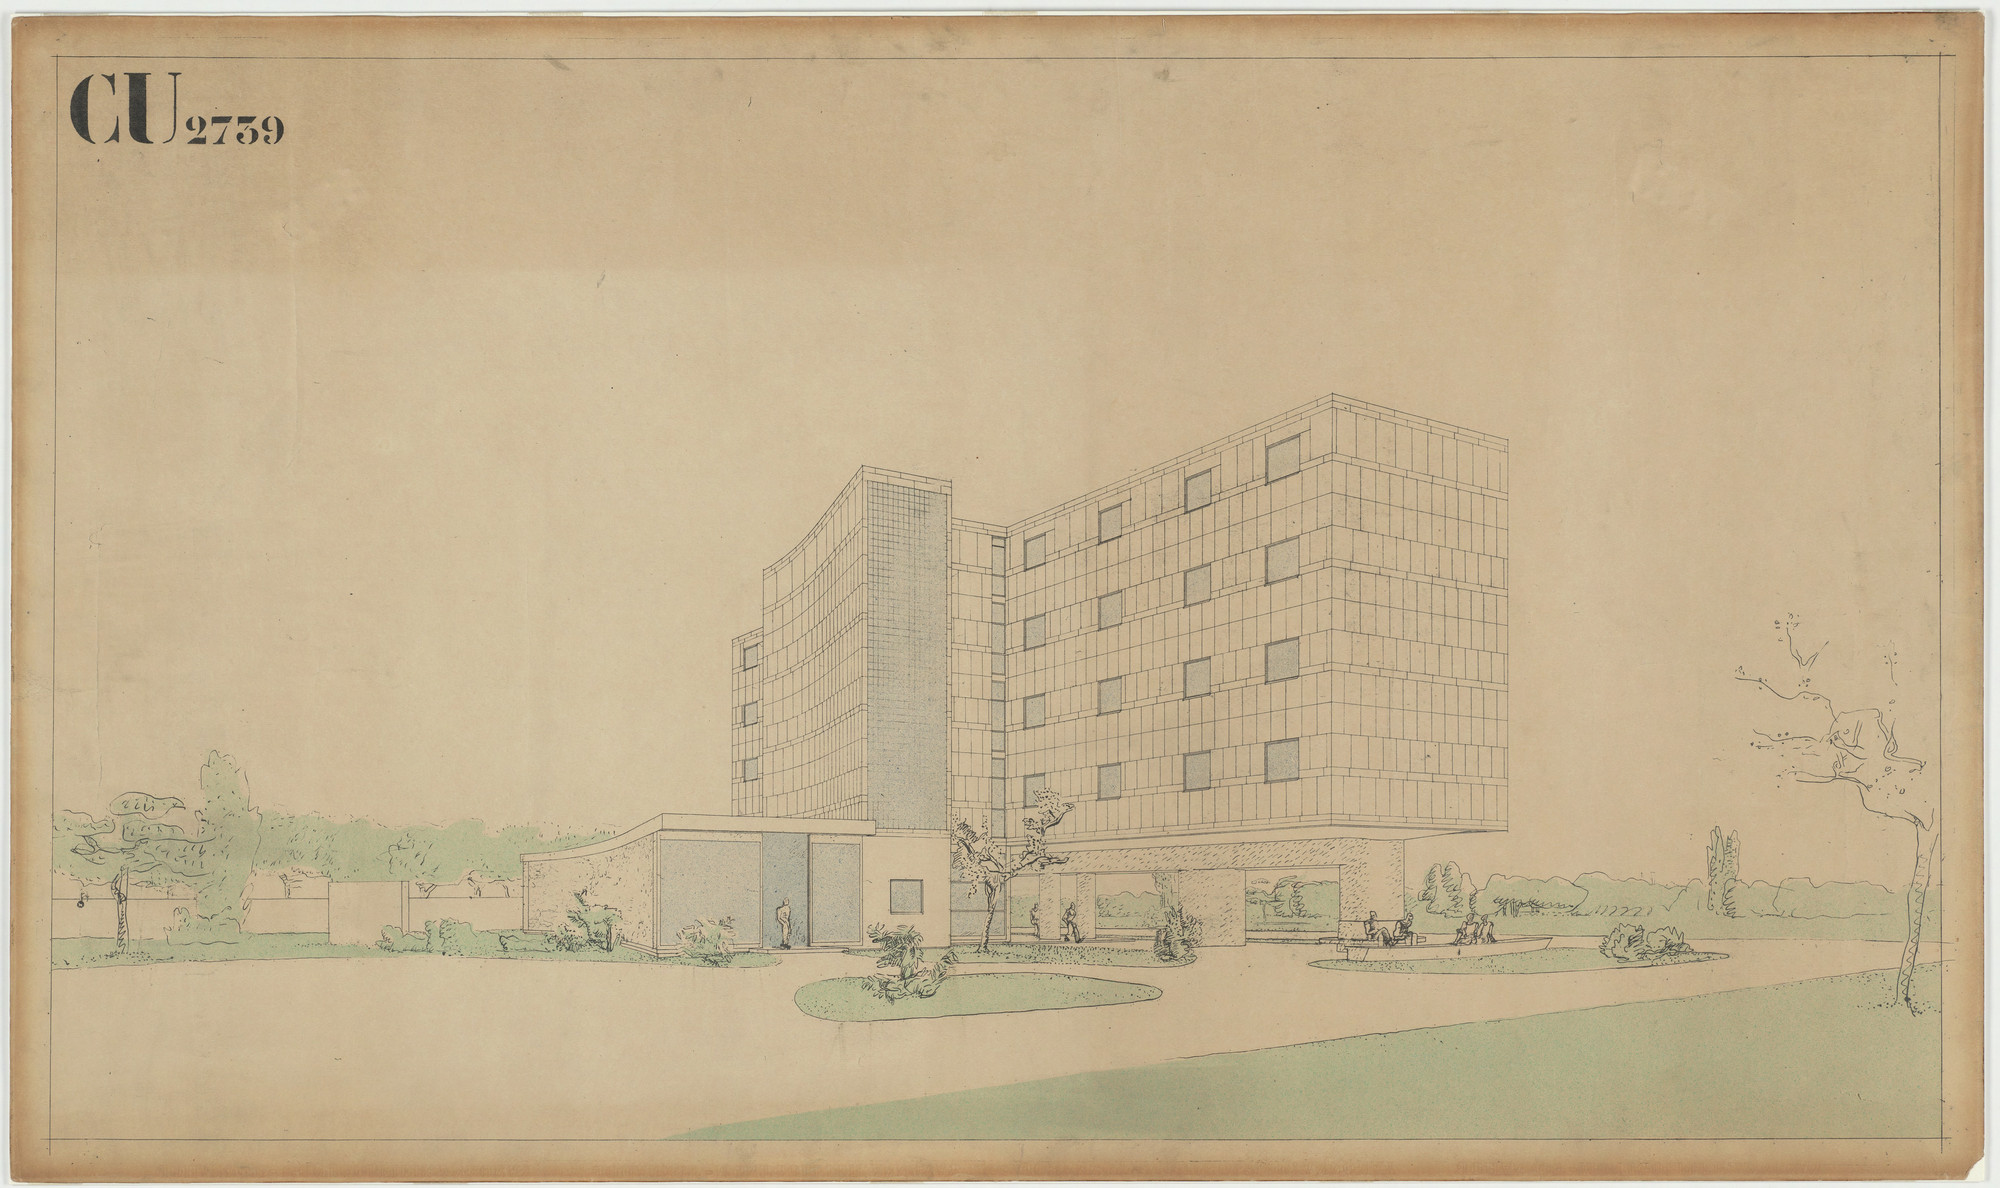 Le Corbusier (Charles-Édouard Jeanneret), Pierre Jeanneret. Swiss Pavilion, Cité internationale universitaire de Paris, France, Perspective of north and west elevations. 1932